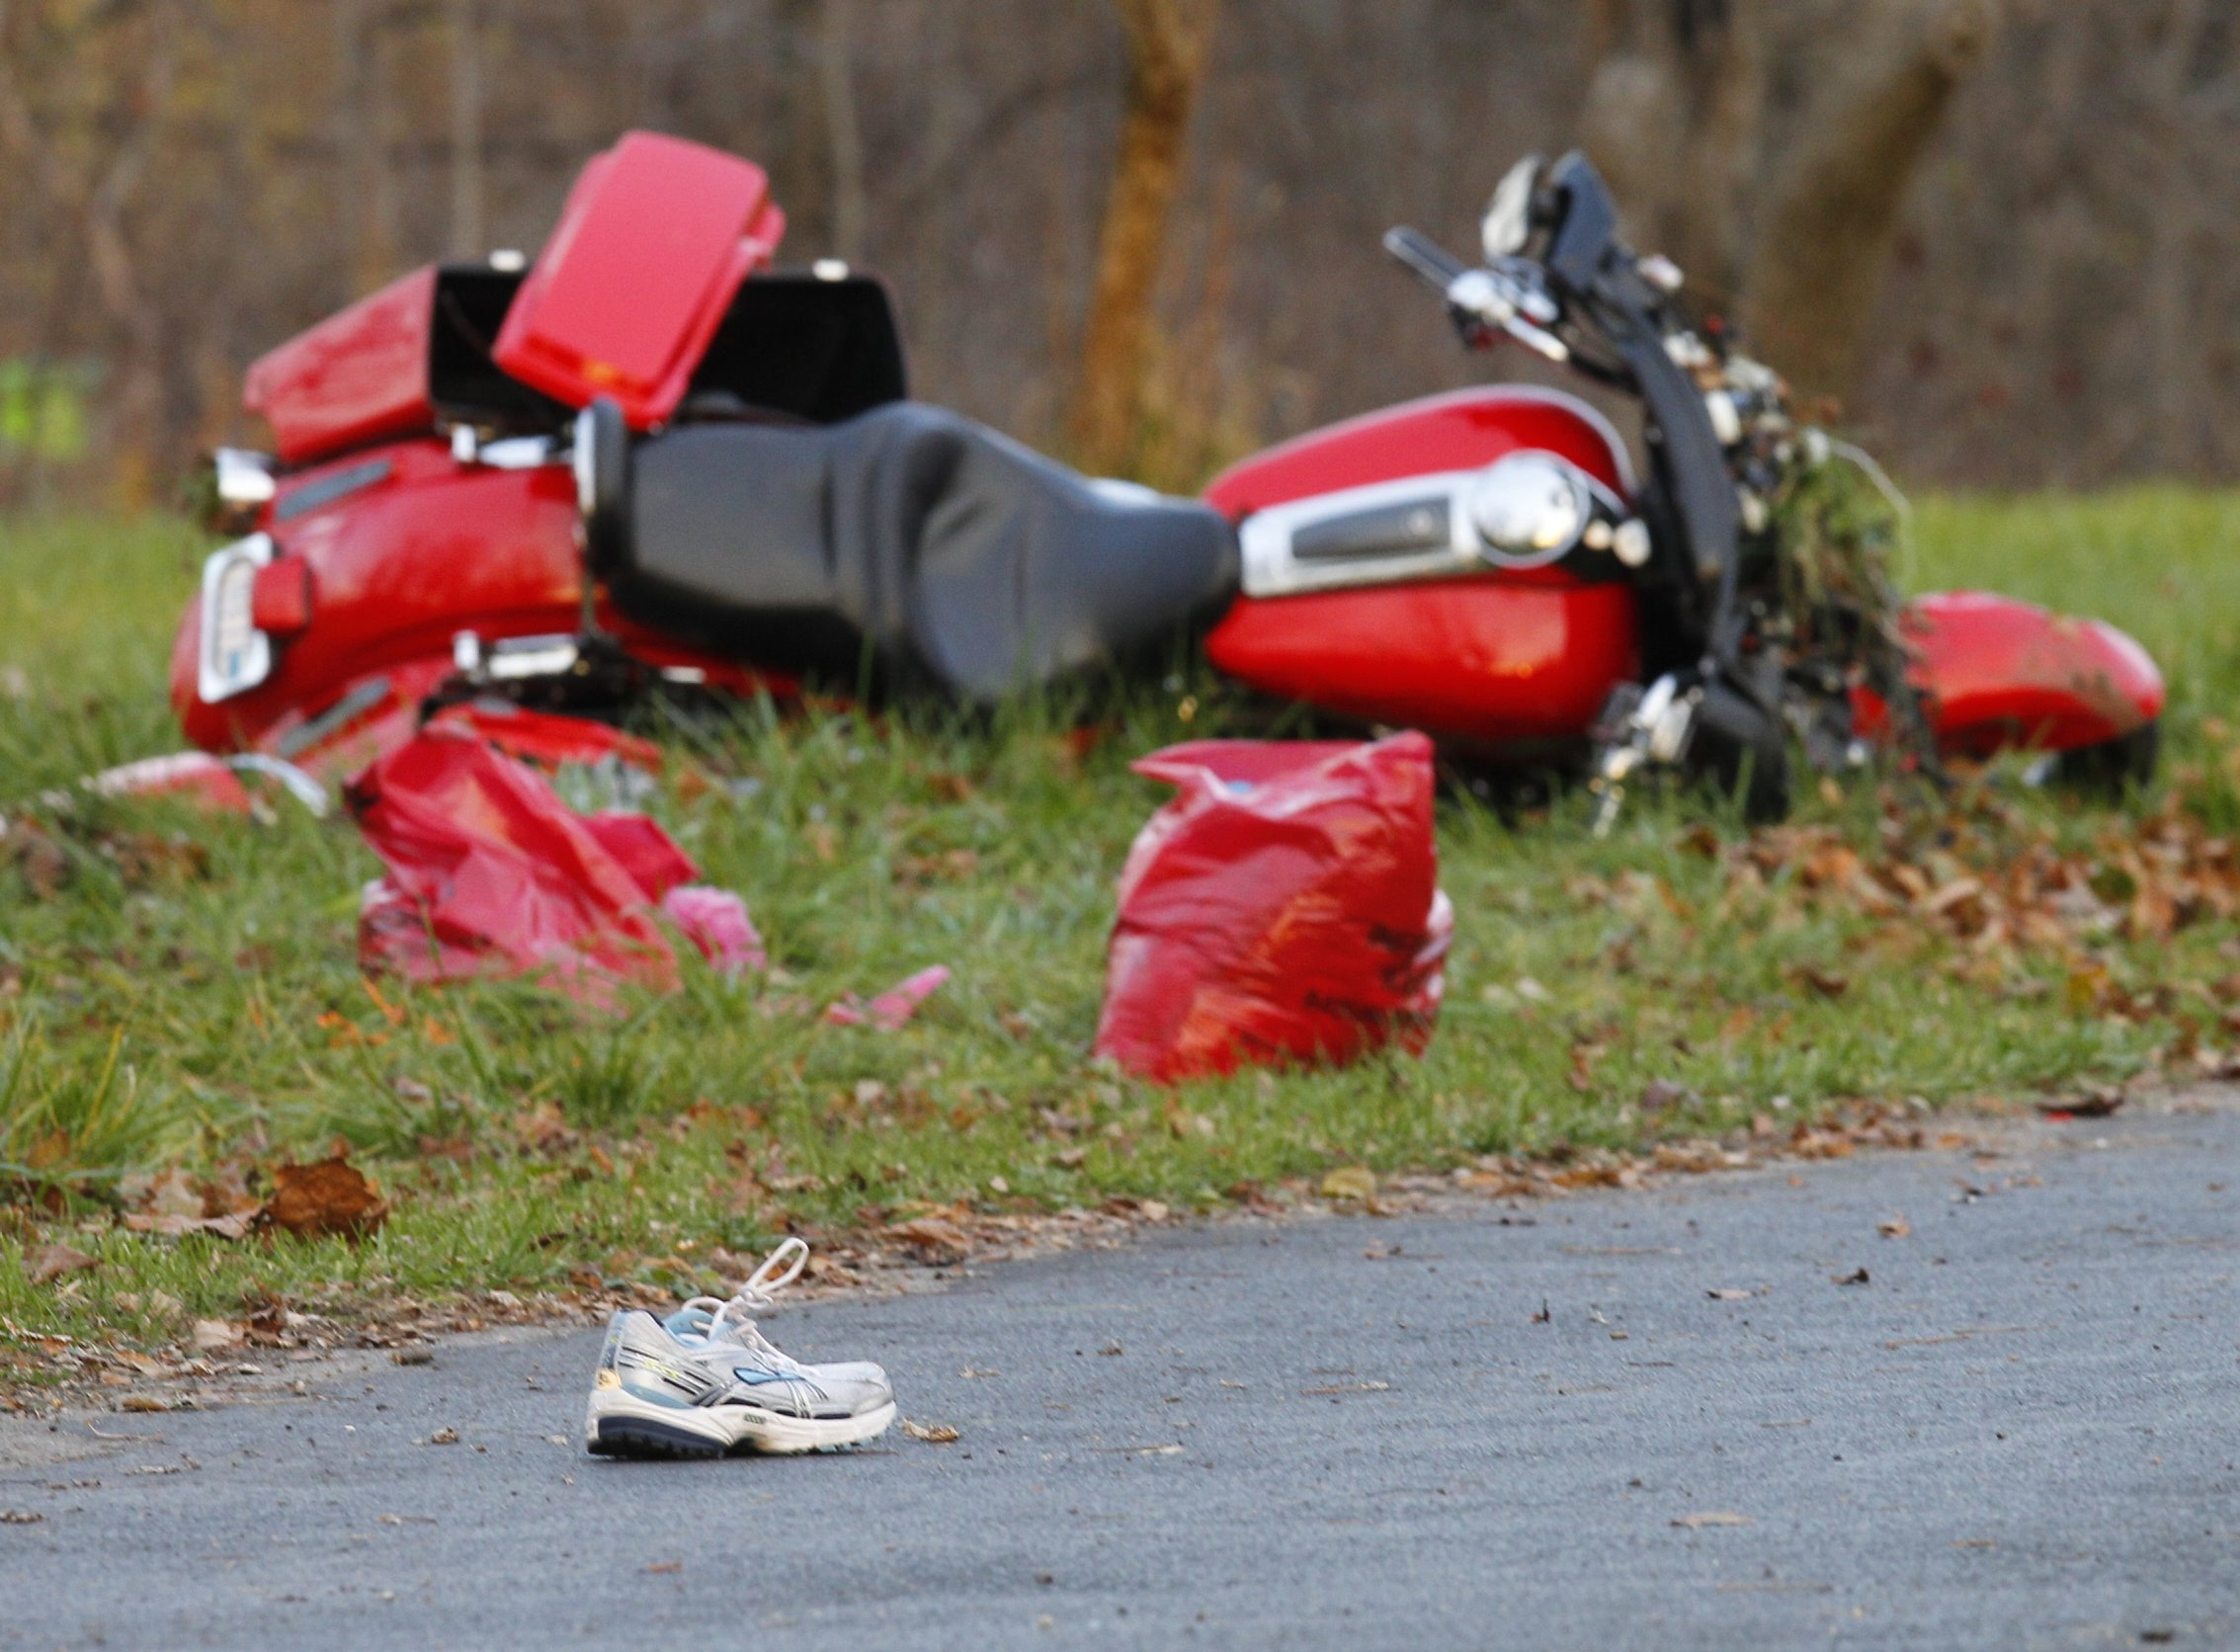 A motorcycle lies in the grass after the driver veered off the road and onto the bike path on Tonawanda Creek Road, killing two pedestrians and injuring a third on Sunday, Nov. 11, 2012.  The driver, David A. Smith, 53, of Niagara Falls was charged with driving while intoxicated and criminally negligent homicide.  (John Hickey/Buffalo News)